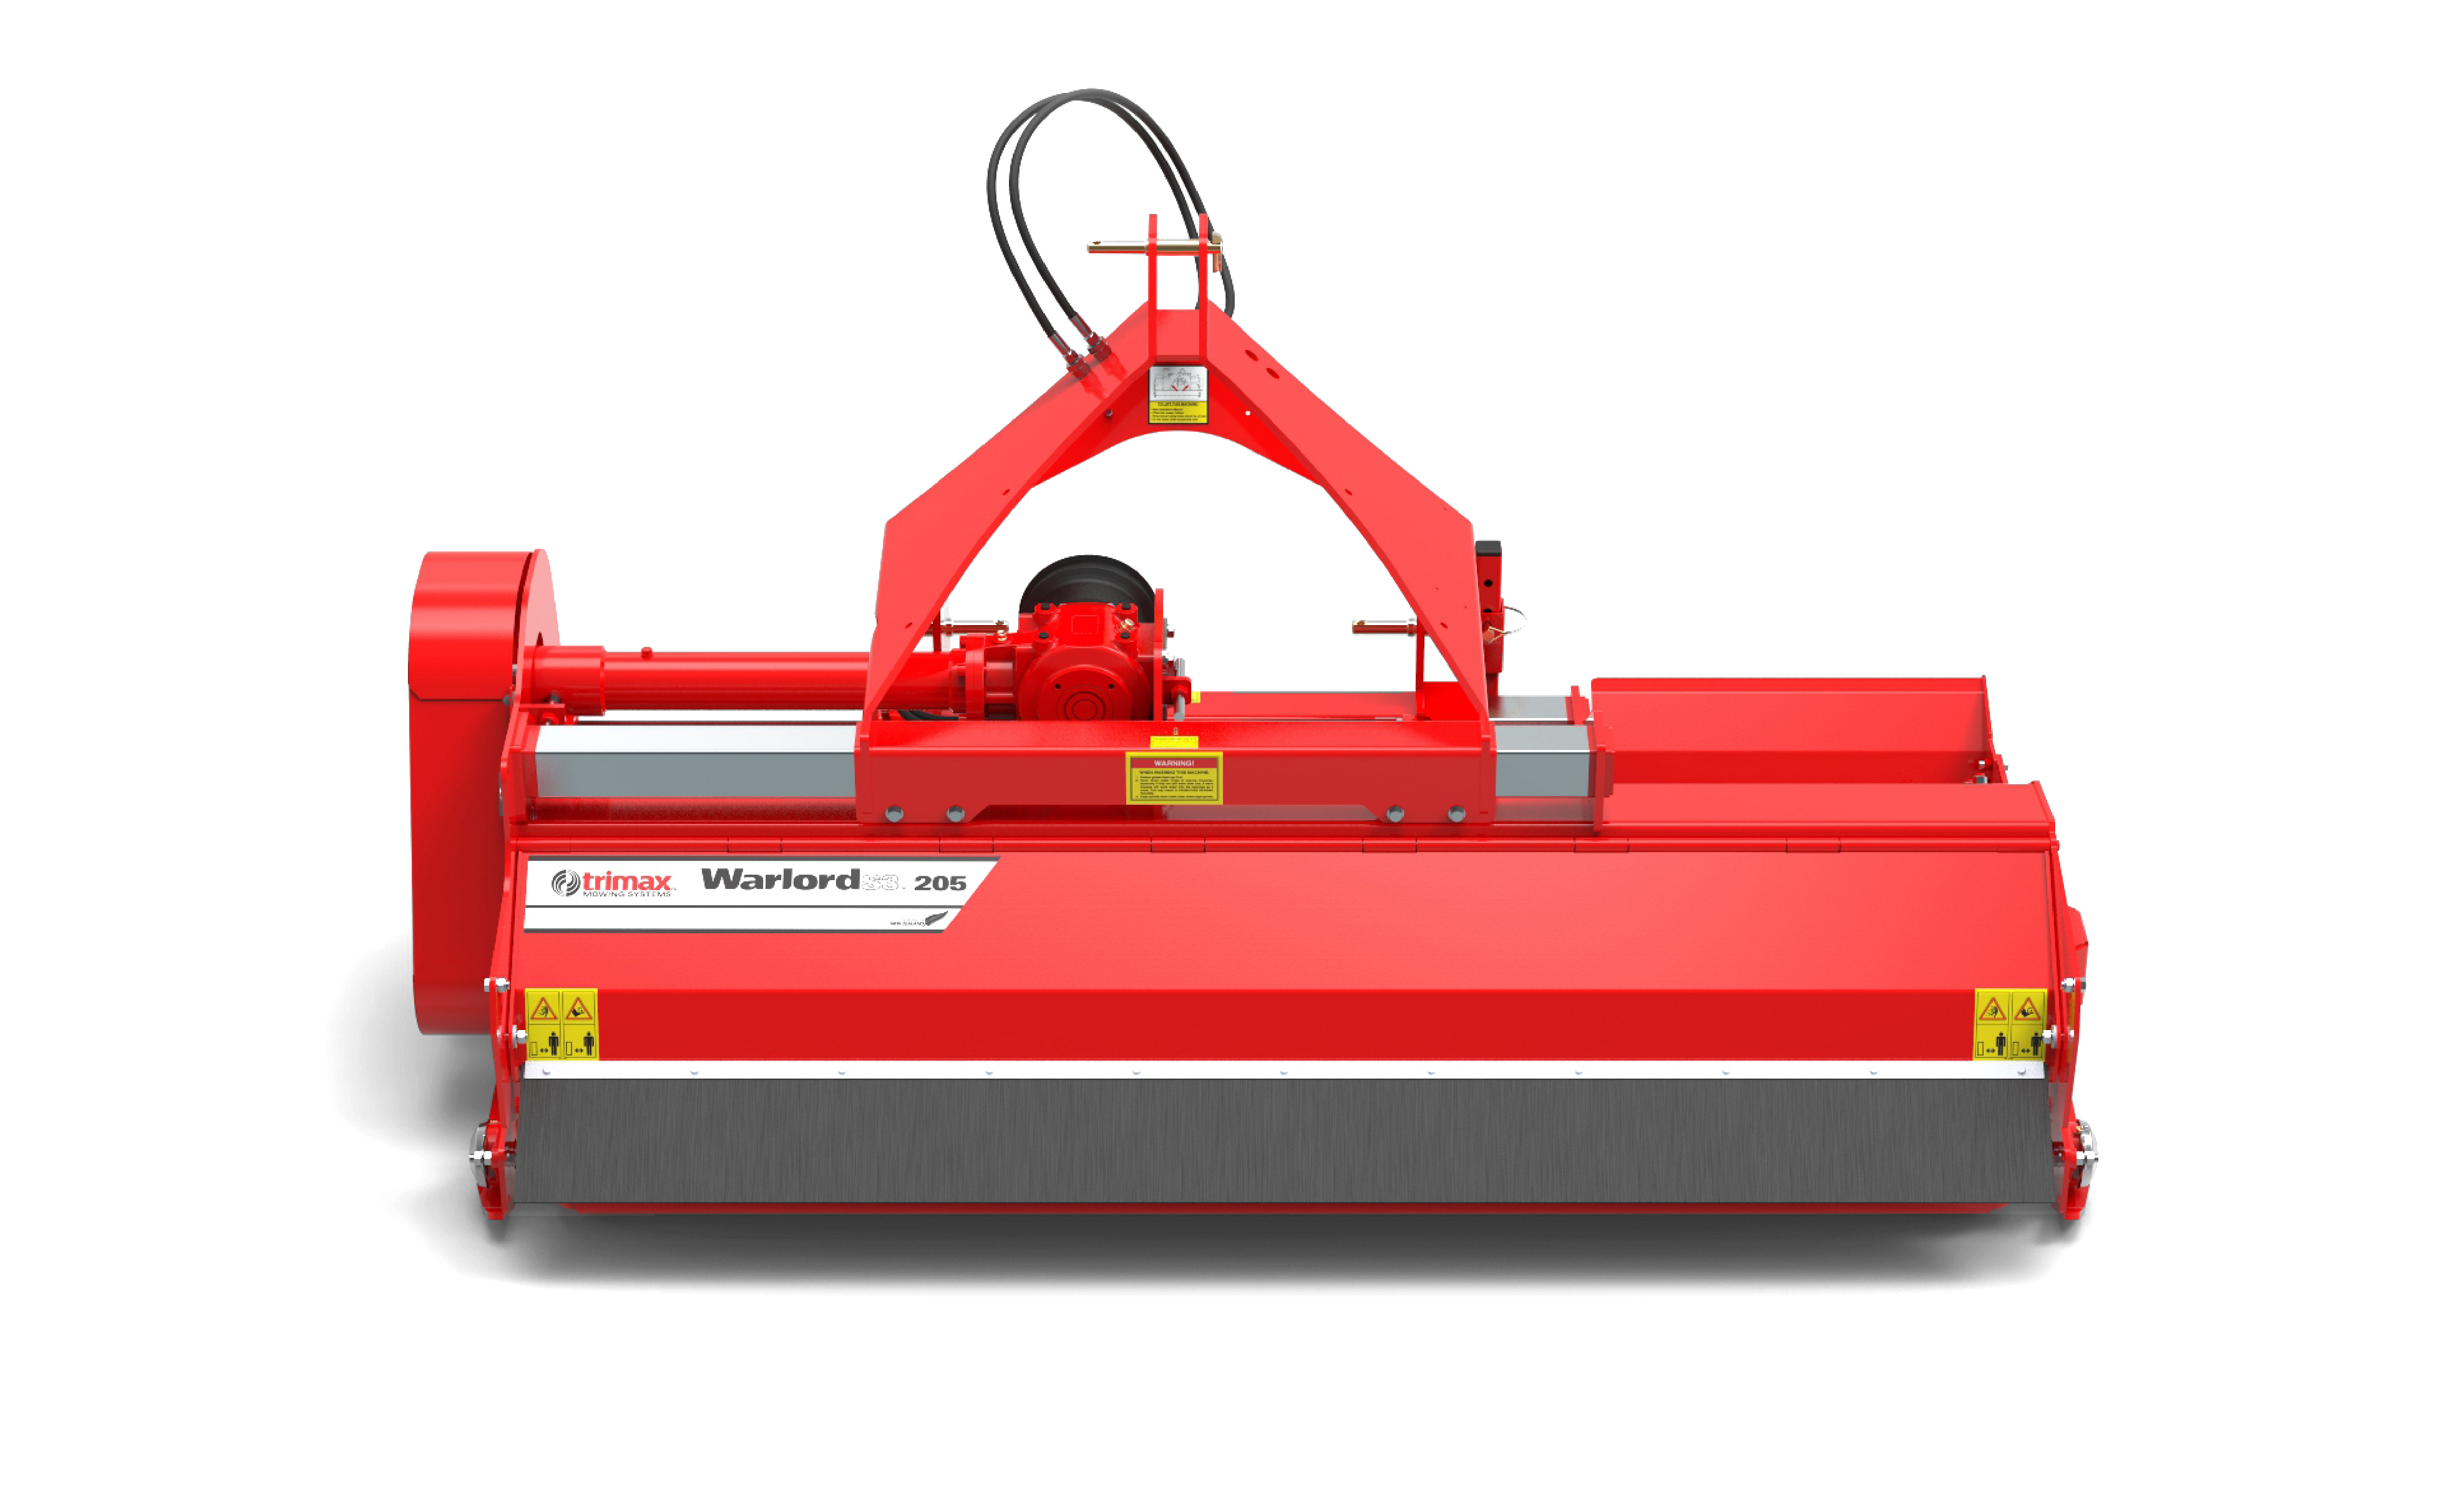 Warlord S3-205 Mower Red